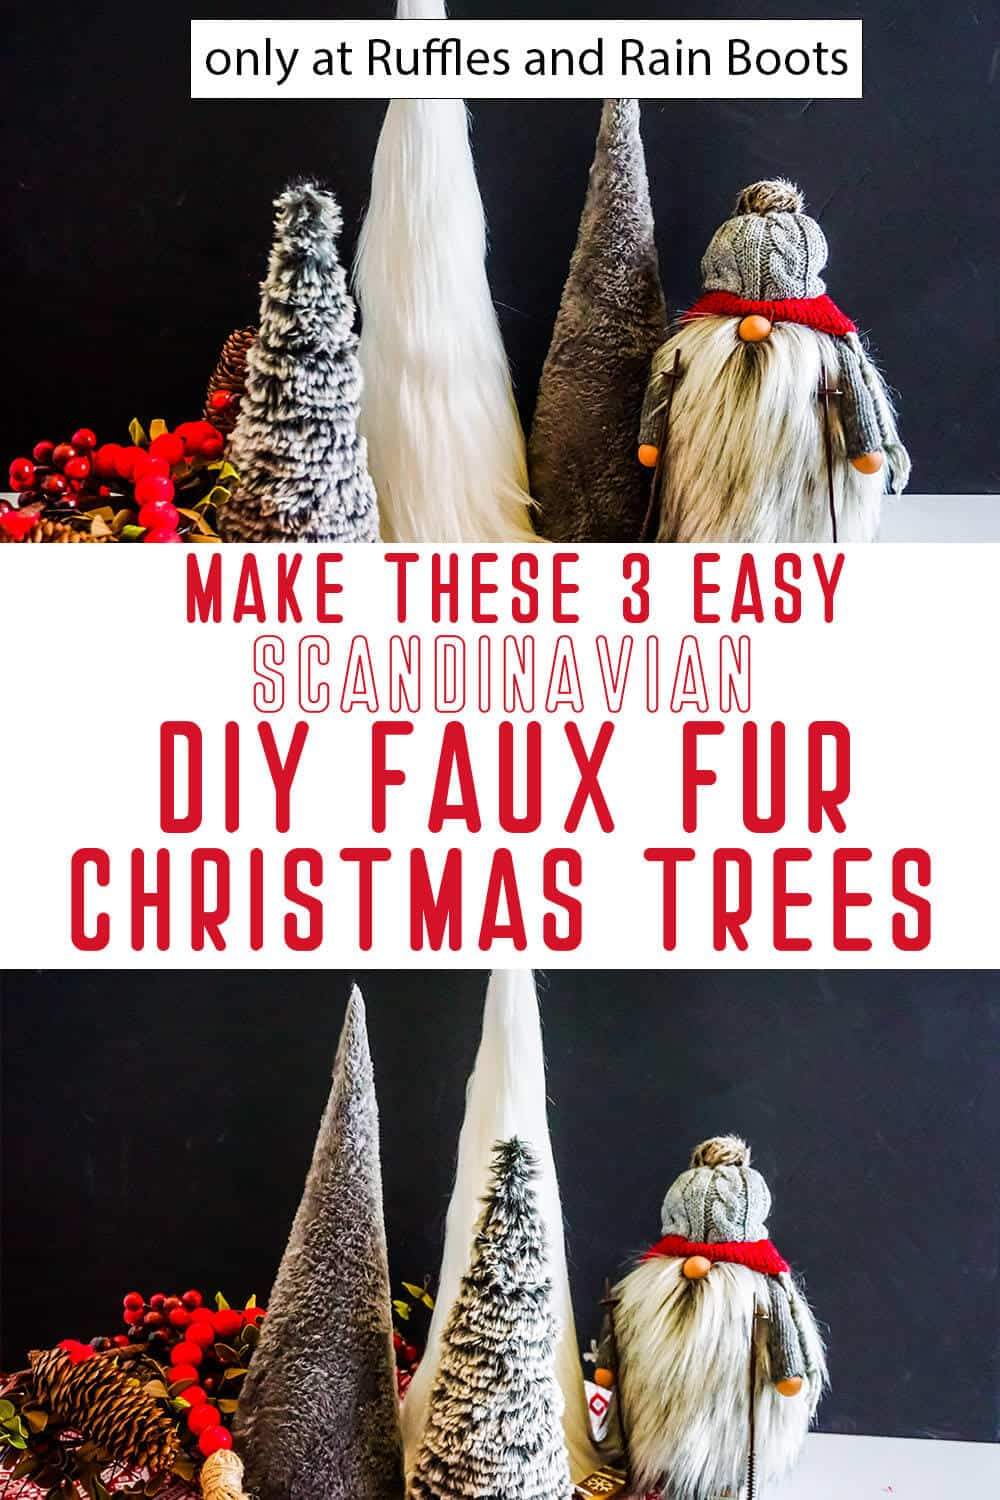 photo collage of diy fur trees for christmas with text which reads make these 3 easy scandinavian diy faux fur christmas trees